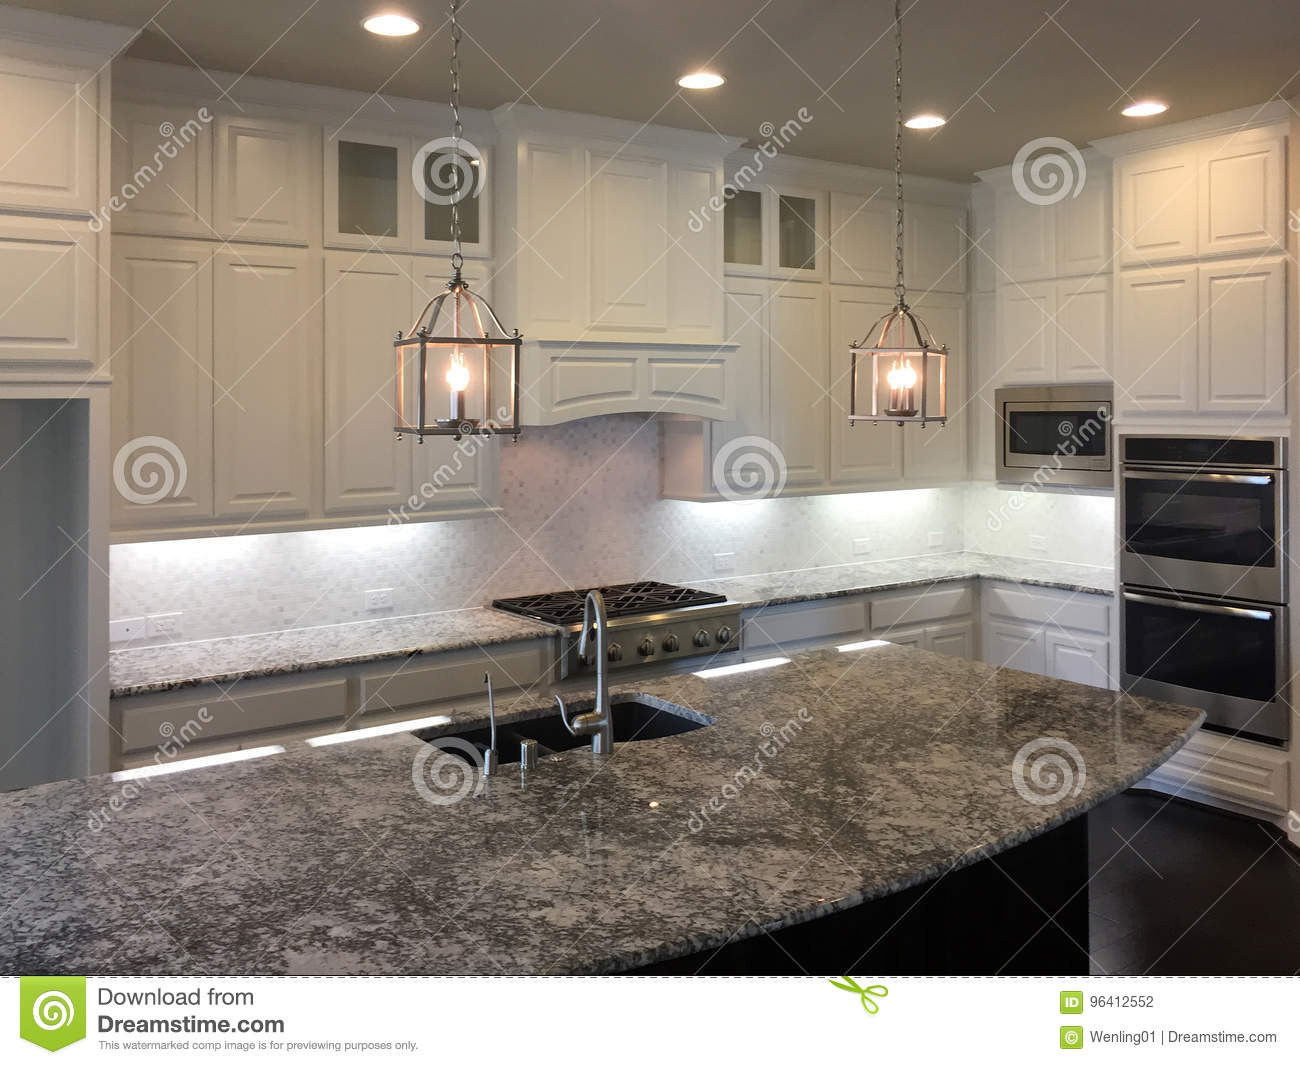 Picture of: Big New Kitchen With Island Counter Design Stock Photo Image Of Community Kitchenware 96412552